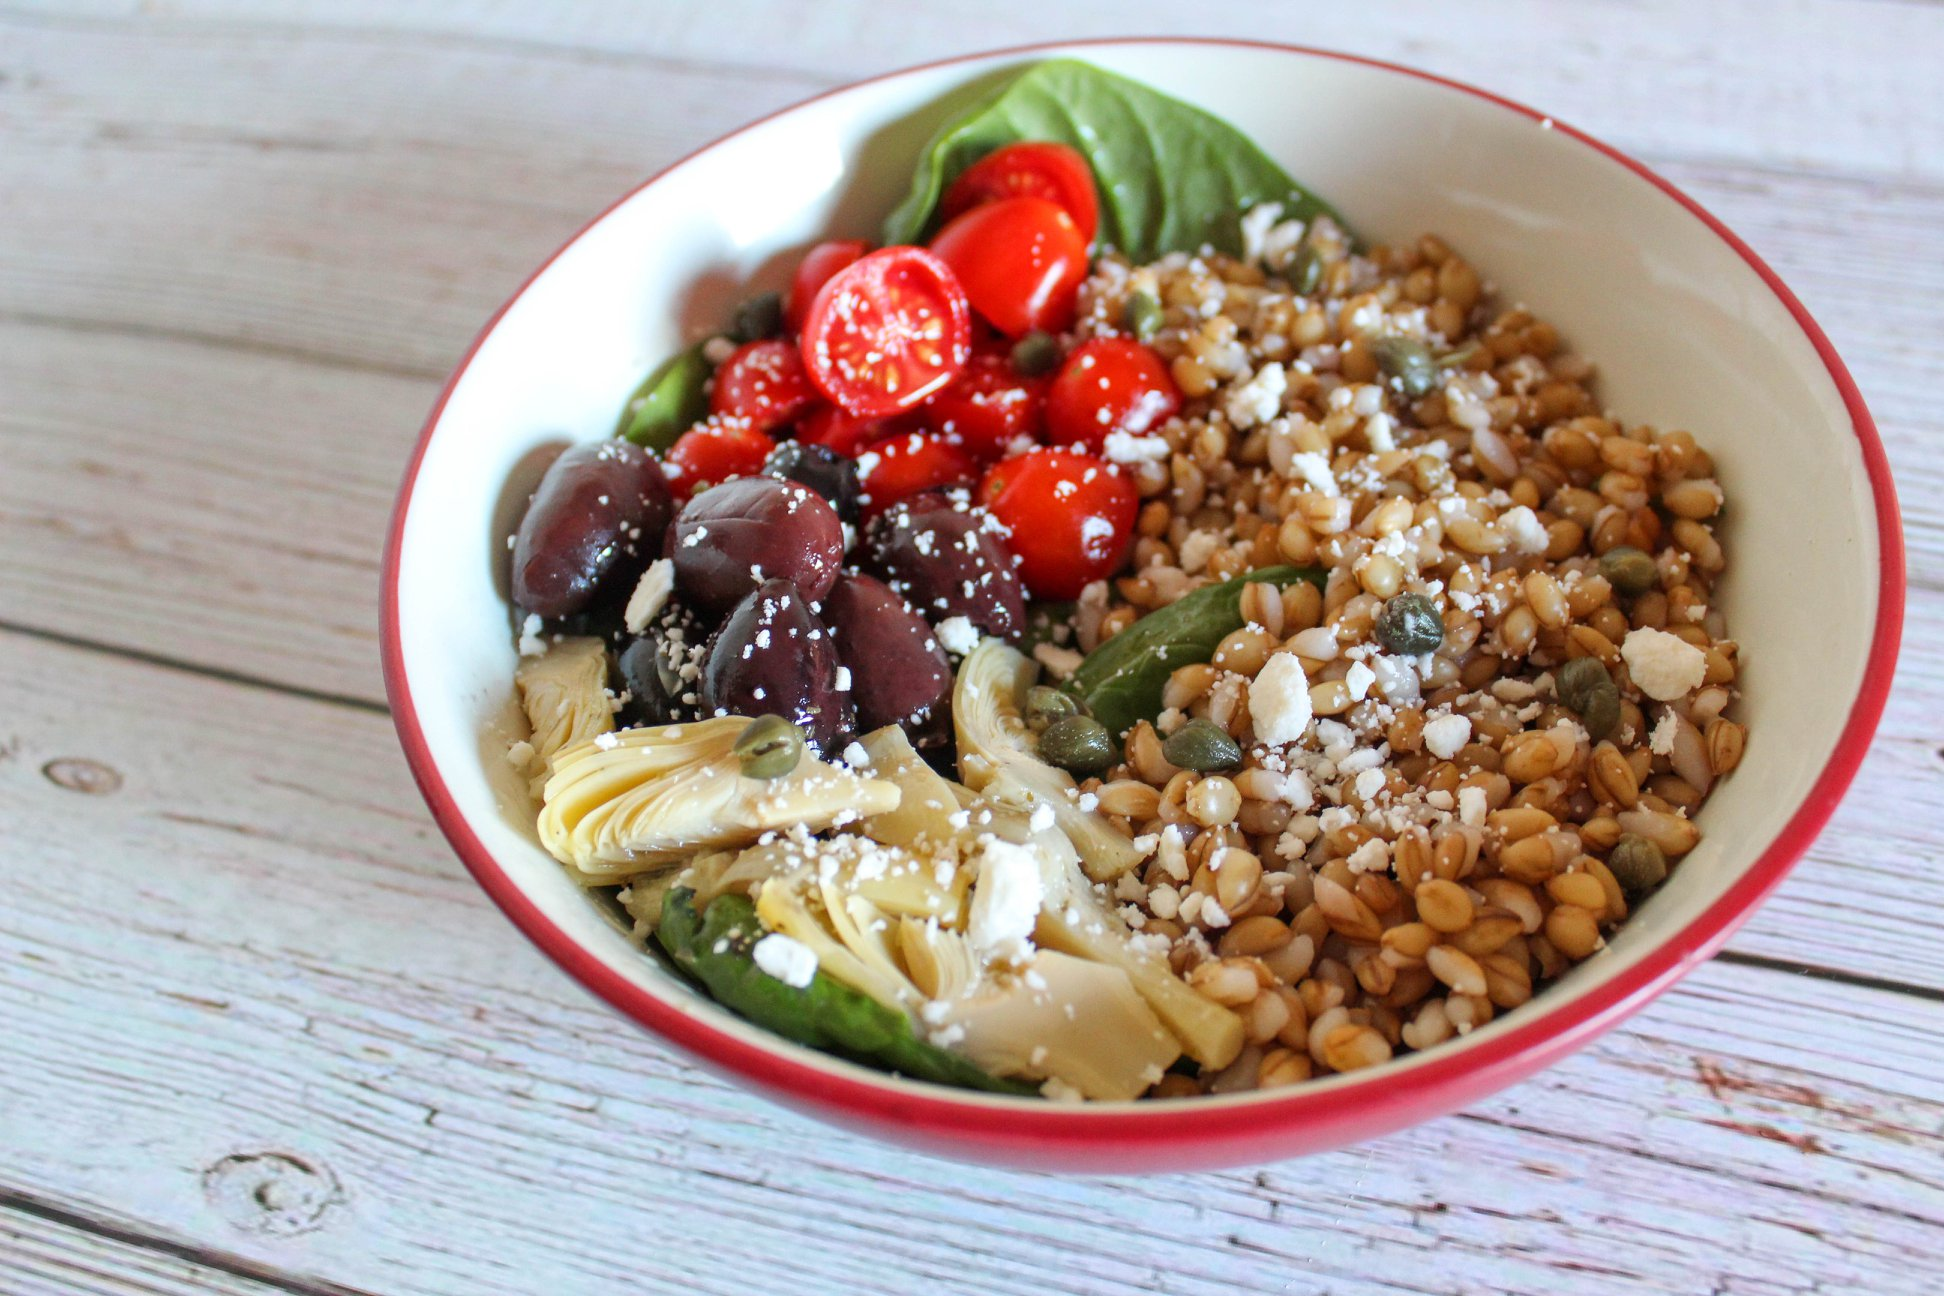 Barley salad with tomatoes, olives and artichokes